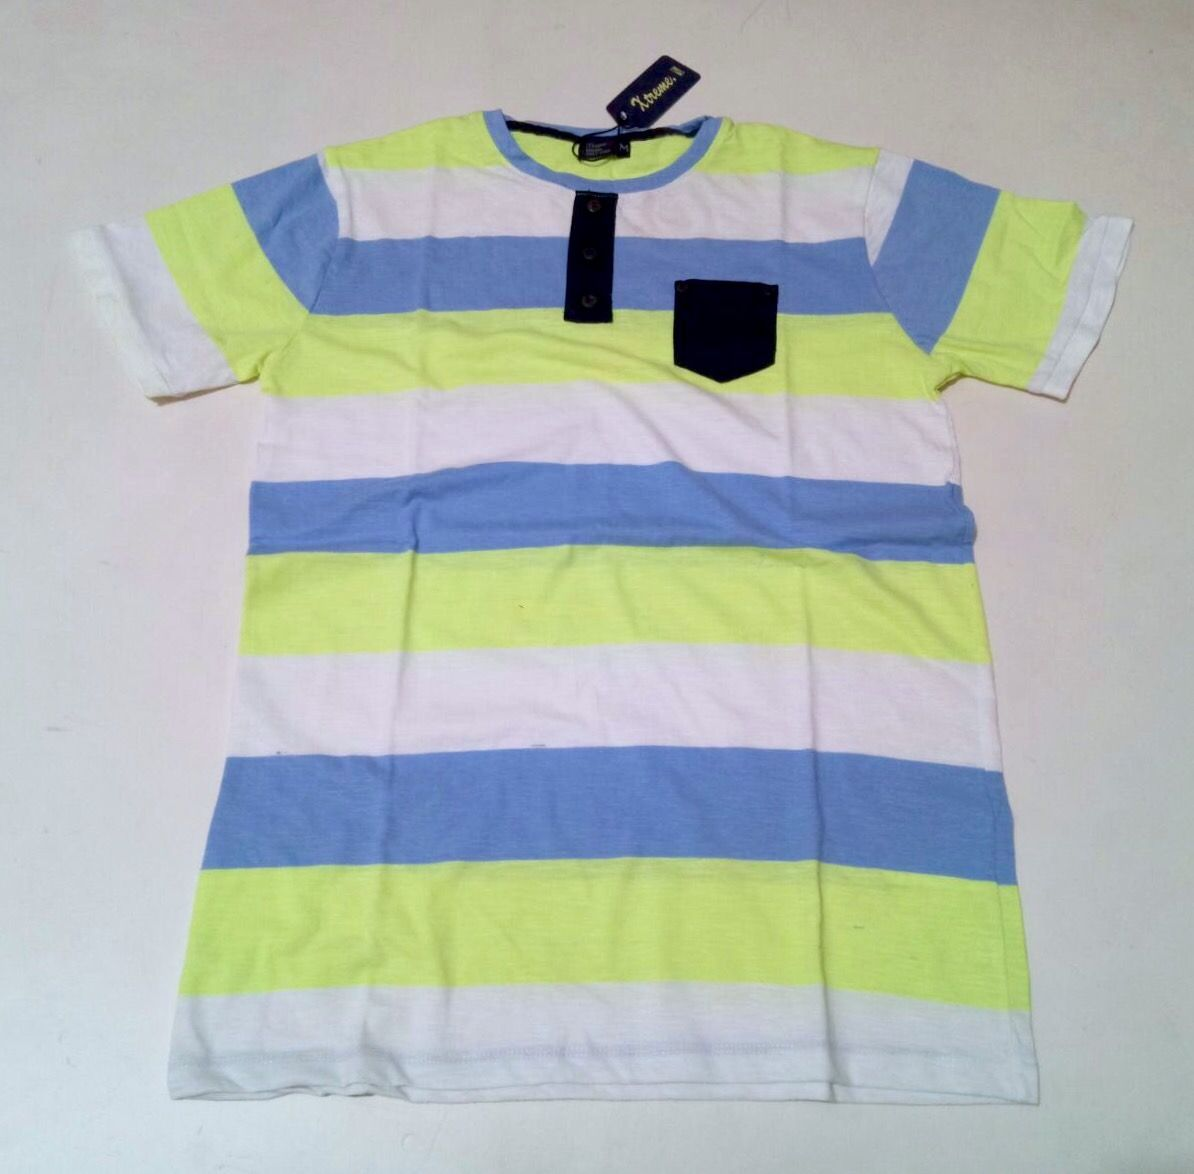 Branded Short Sleeve Cotton T Shirts From Minmax Textile Offer T Shirts Direct From Ficory With Wholesale Factory Price Cotton Tshirt Sleeve Cotton Fashion